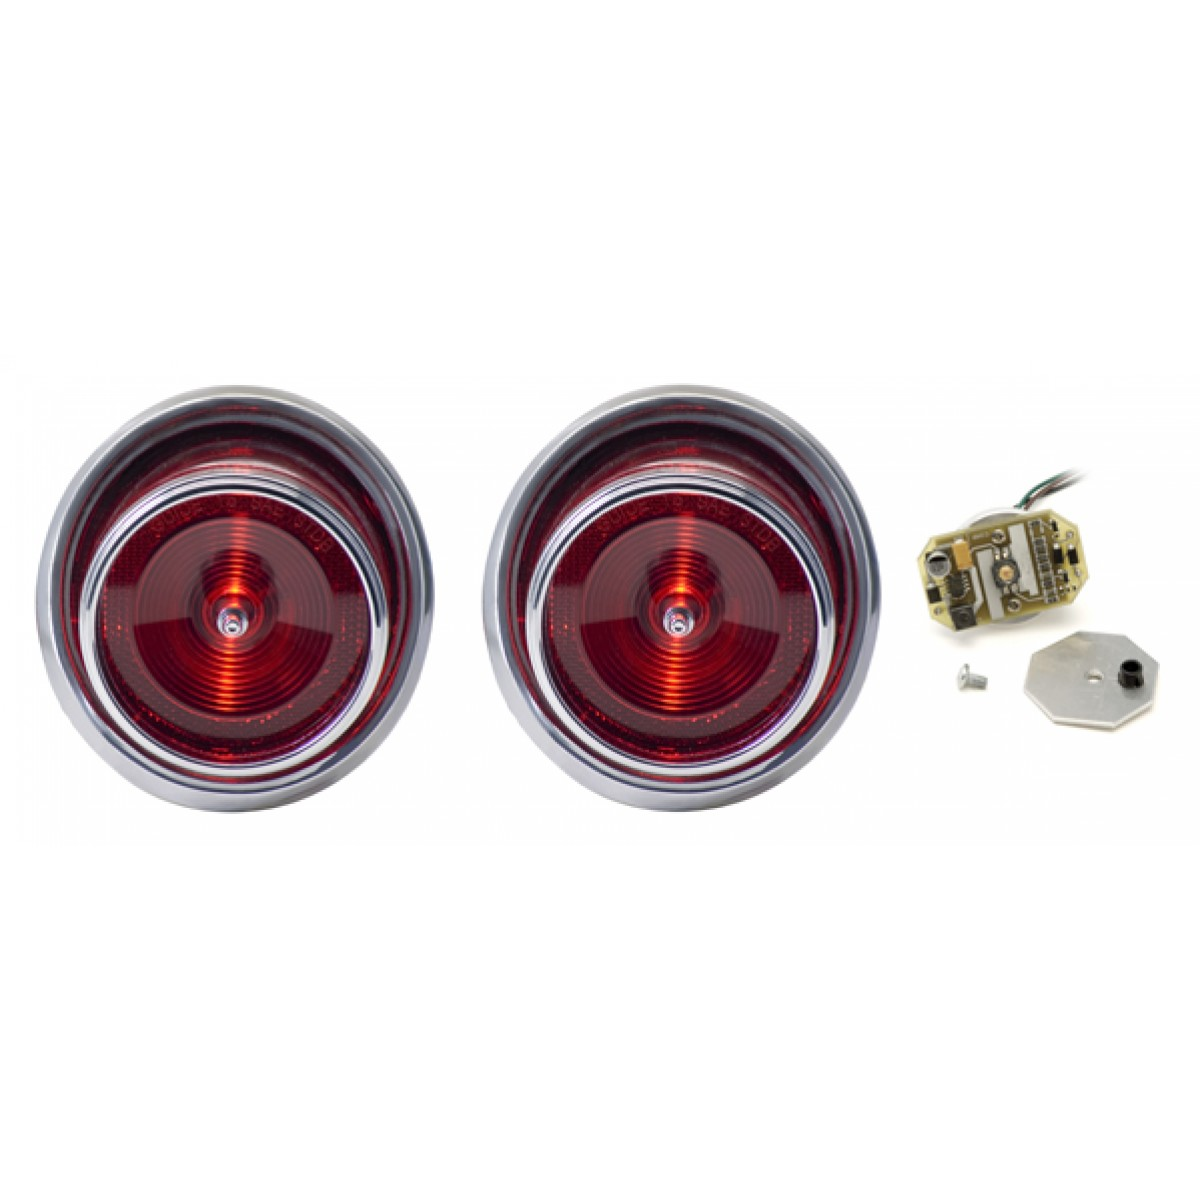 1965 chevy impala caprice led tail lights dakota digital lat msd ignition  diagram 65 impala more